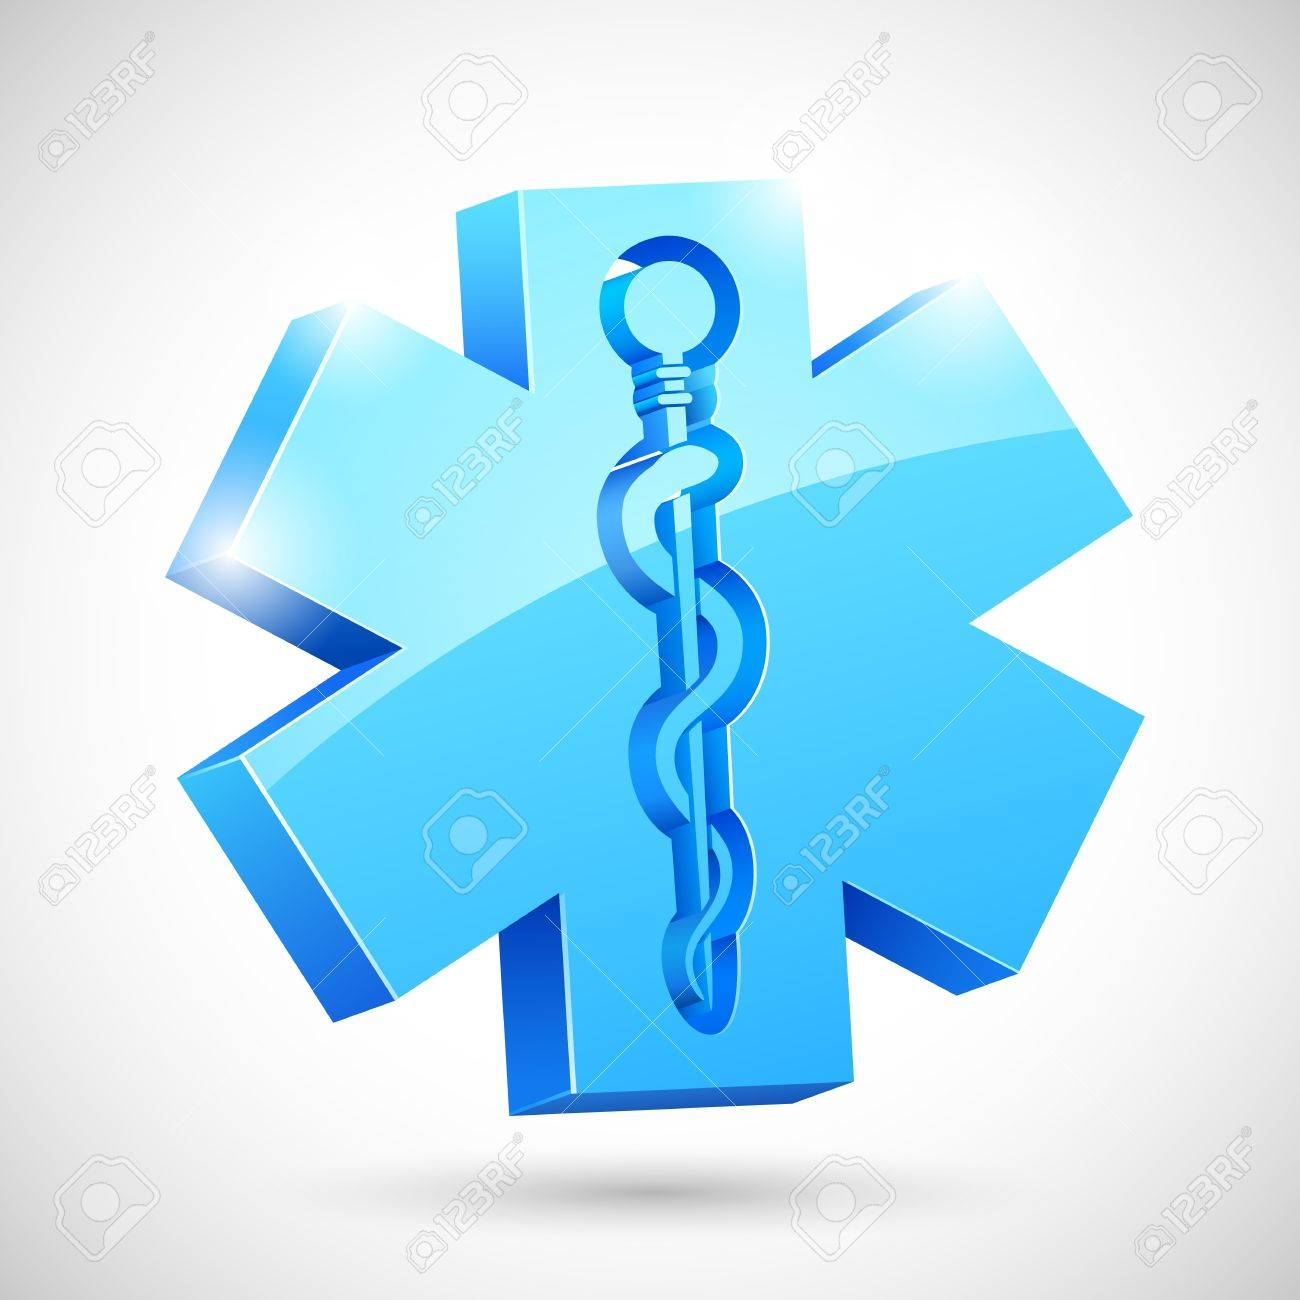 Illustration of medical symbol with serpent and stick stock photo illustration of medical symbol with serpent and stick stock illustration 20922714 buycottarizona Image collections